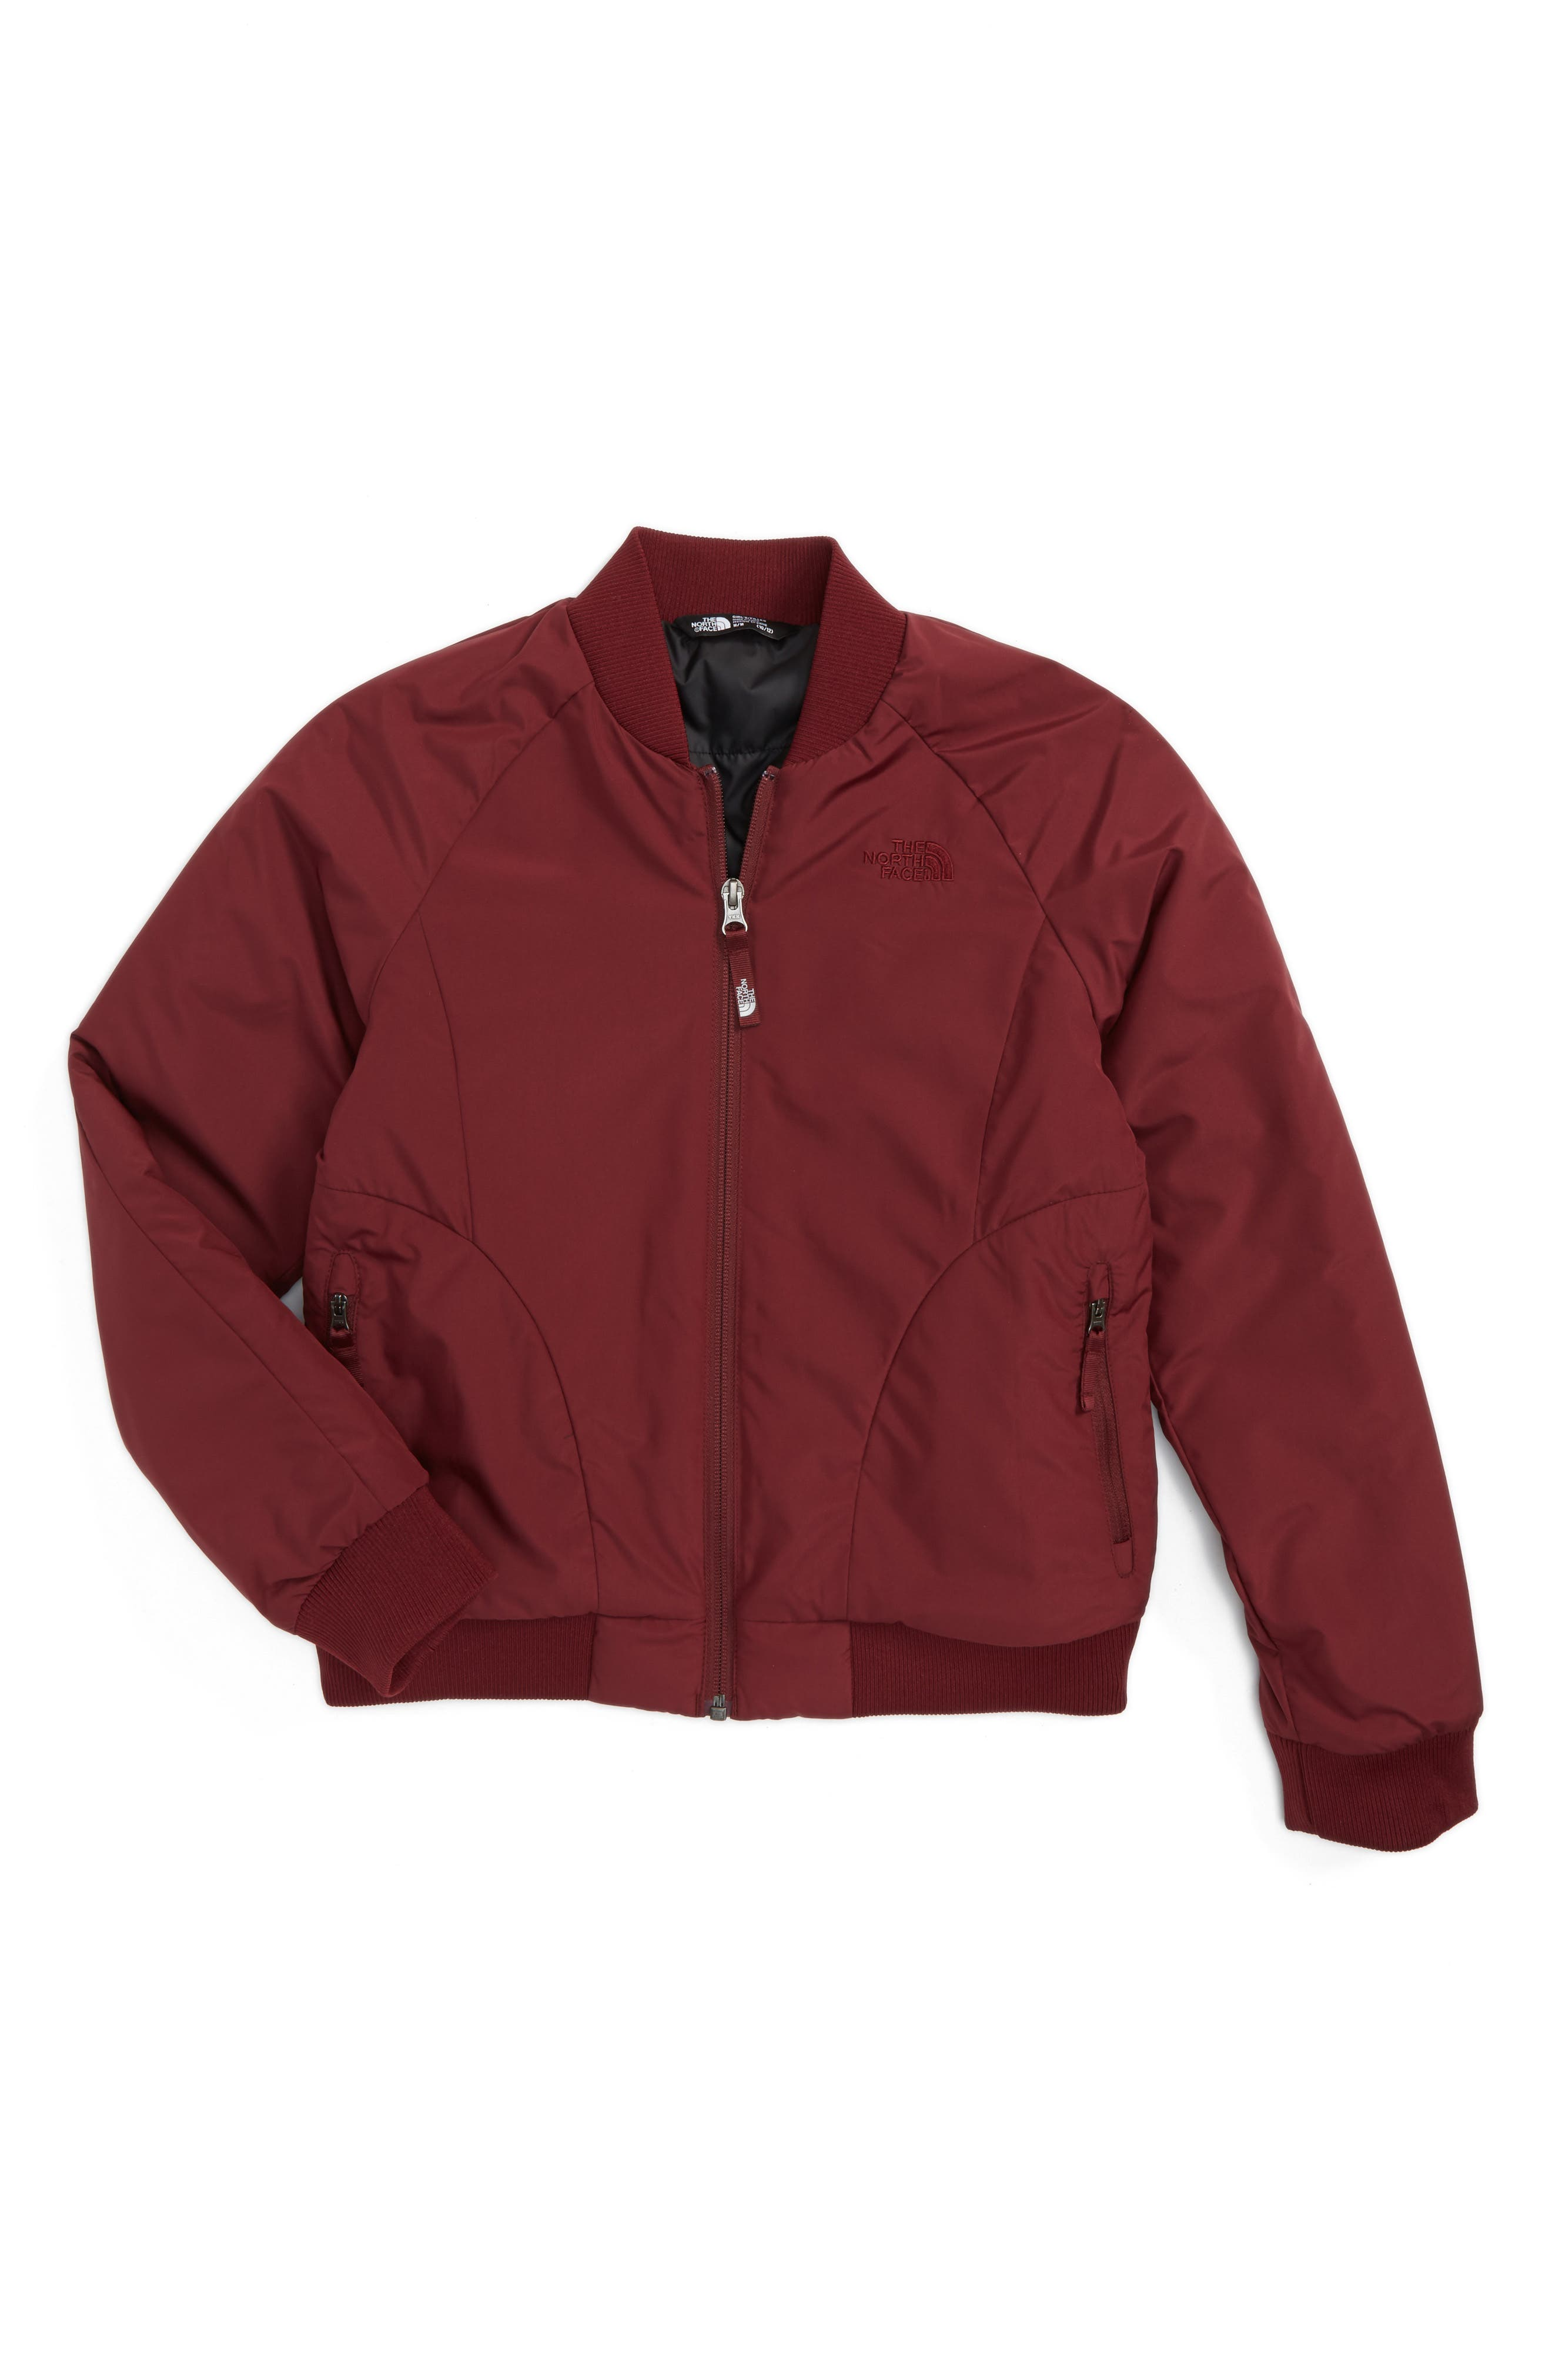 THE NORTH FACE Rydell Heatseeker<sup>™</sup> Bomber Jacket